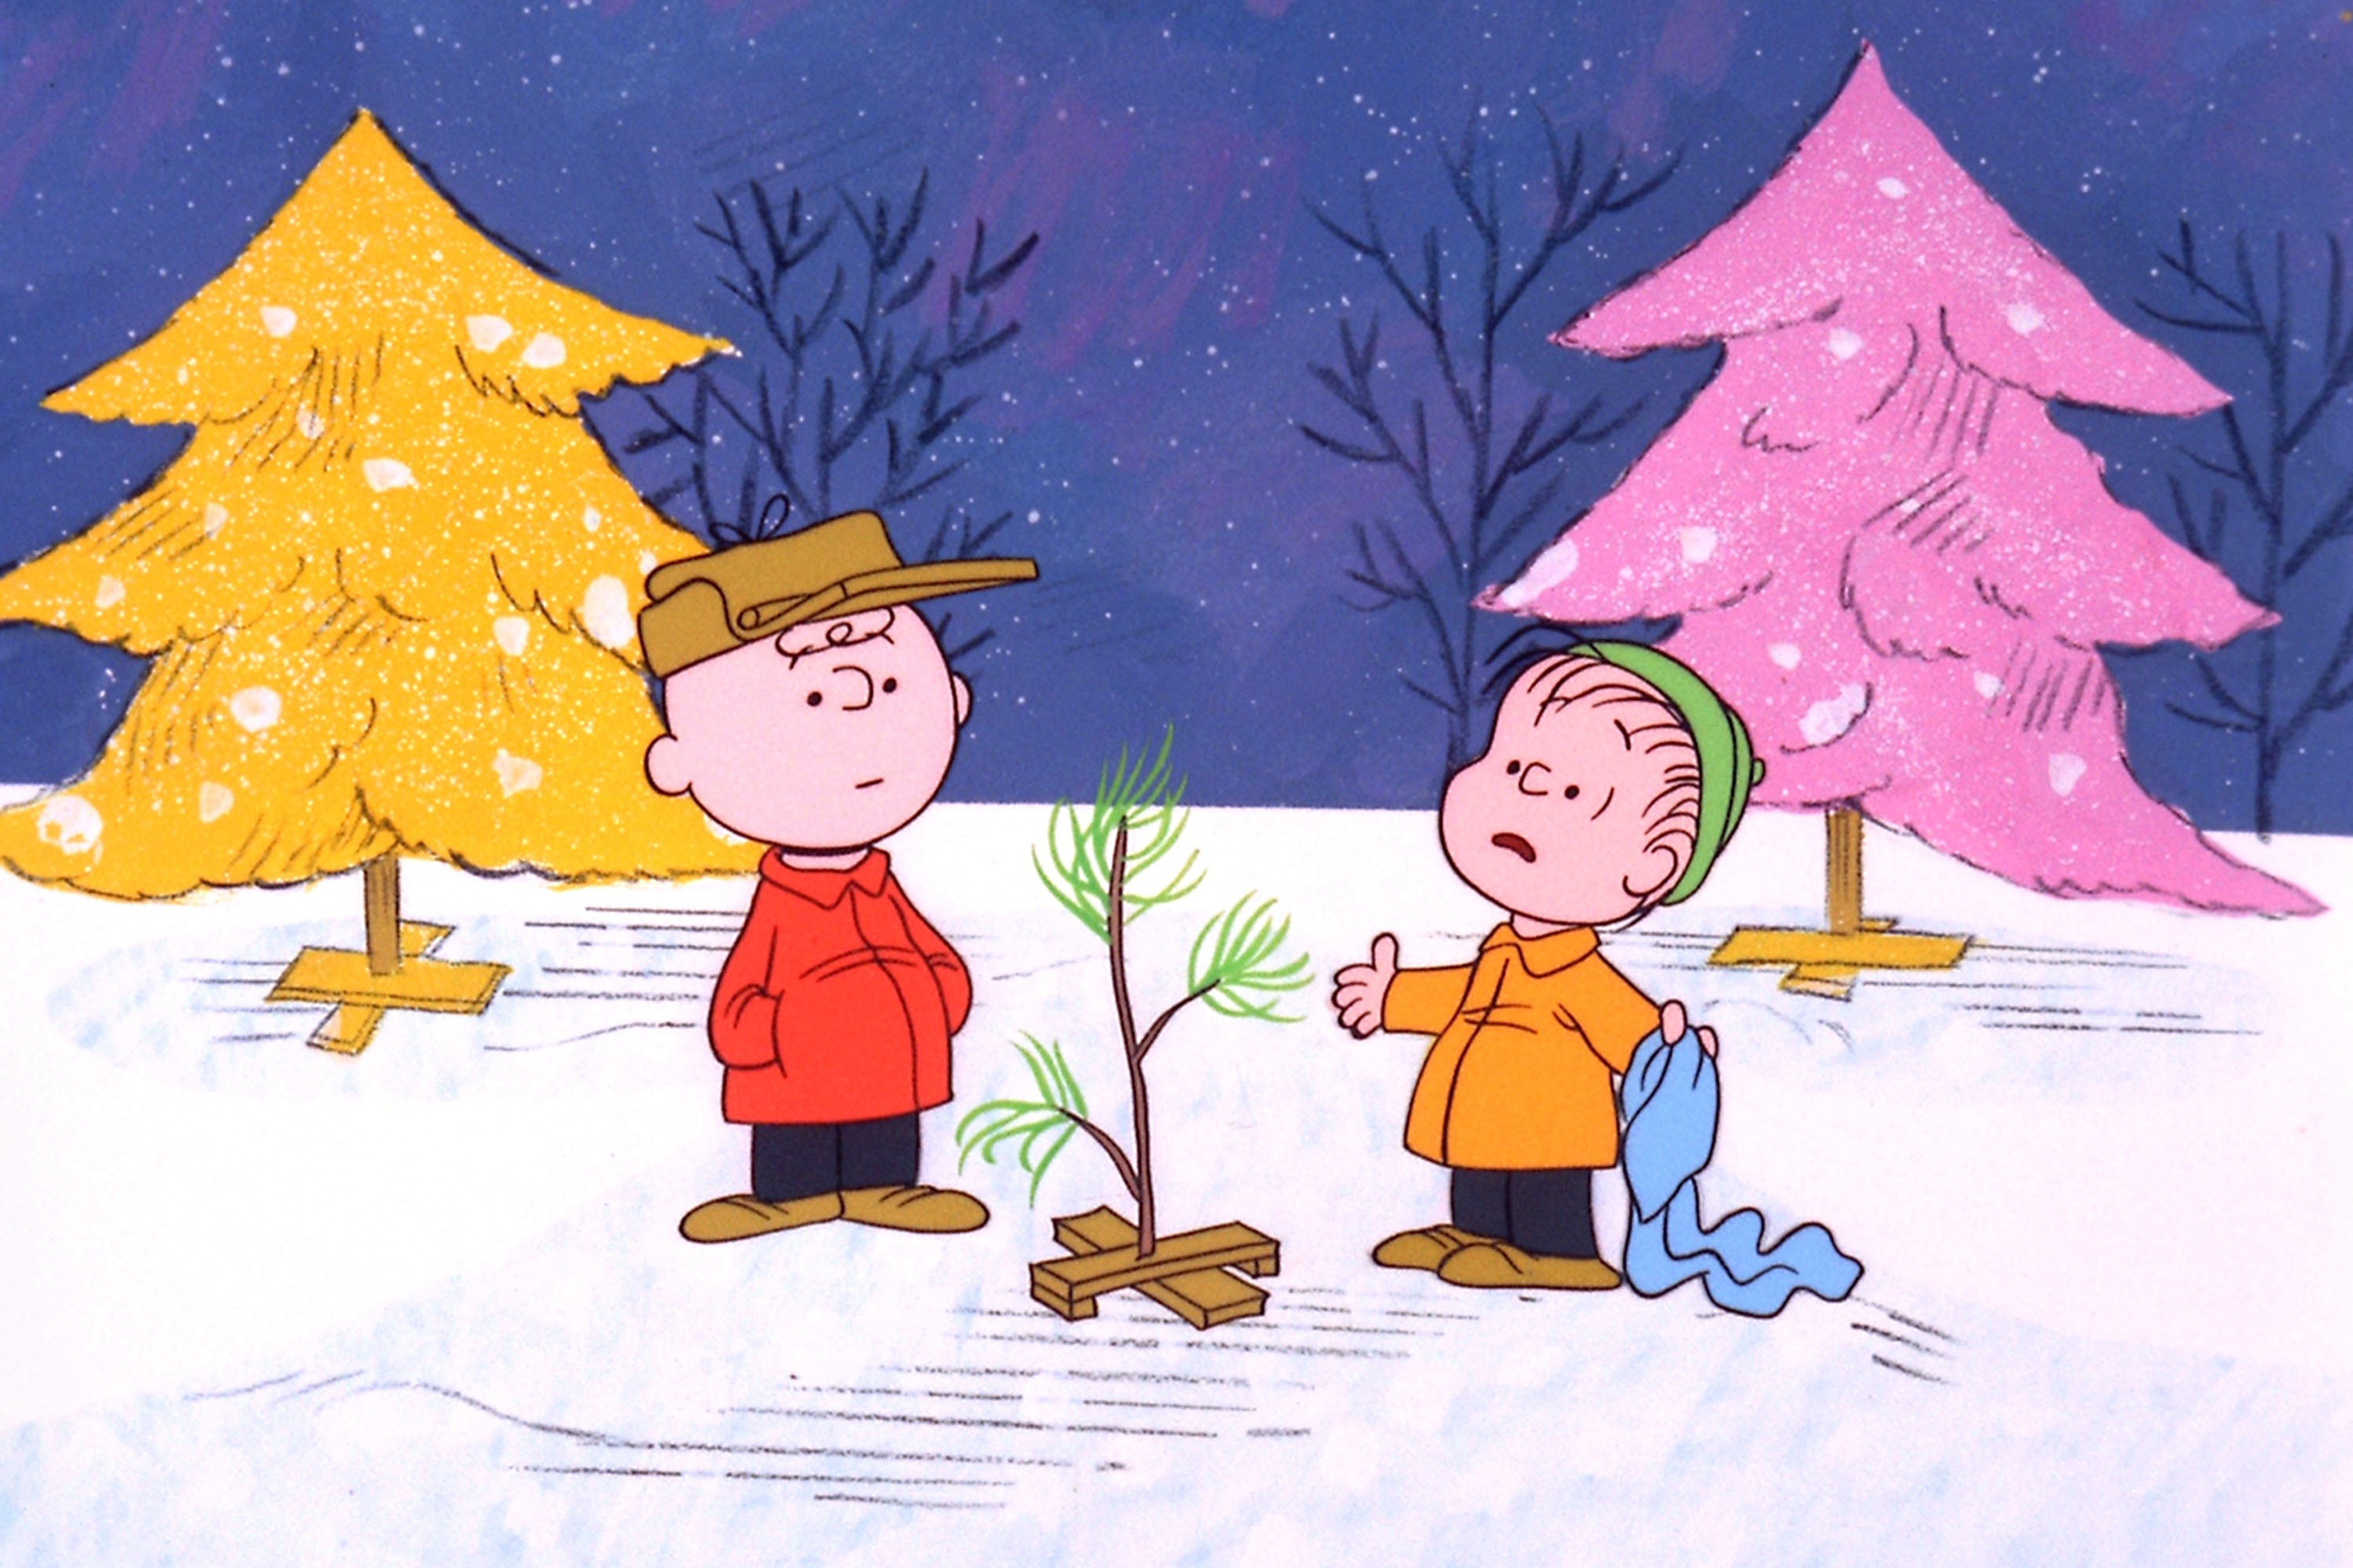 2021 Charlie Brown Christmas Airs When Charlie Brown Holiday Specials Will Air On Tv After All